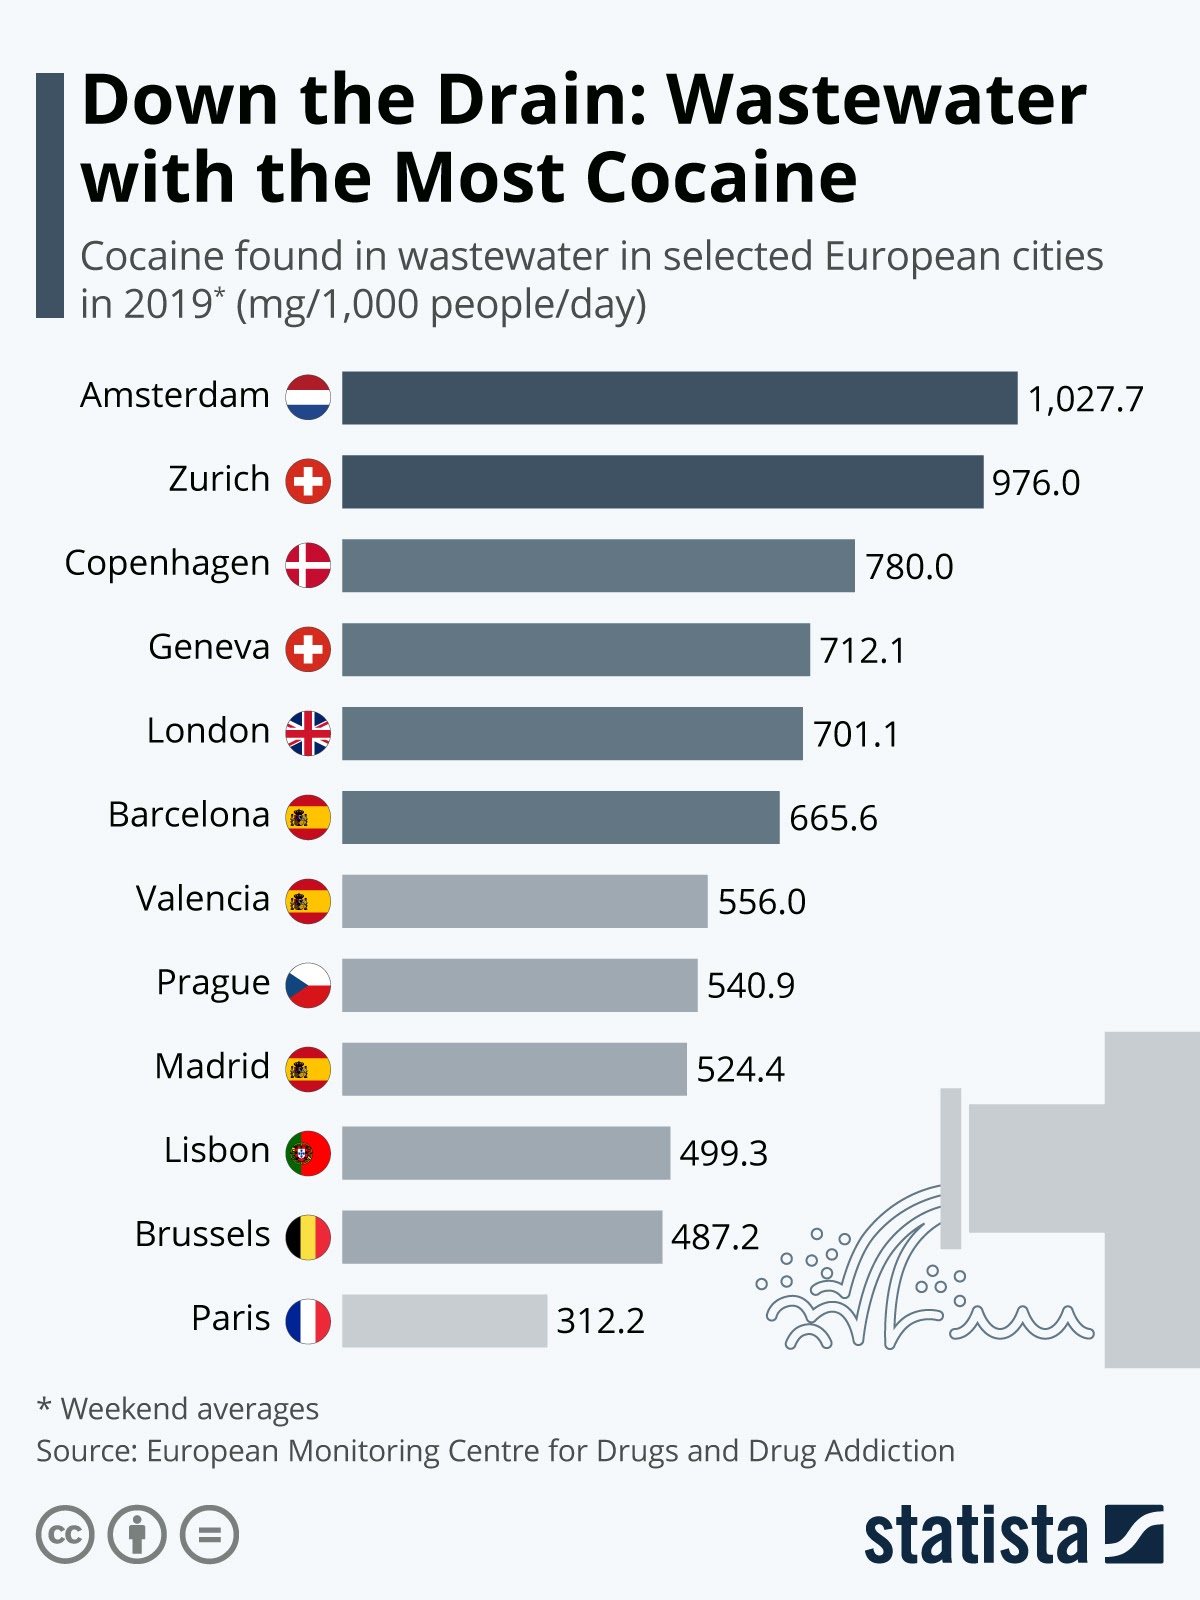 Down the Drain: Wastewater with the Most Cocaine #infographic